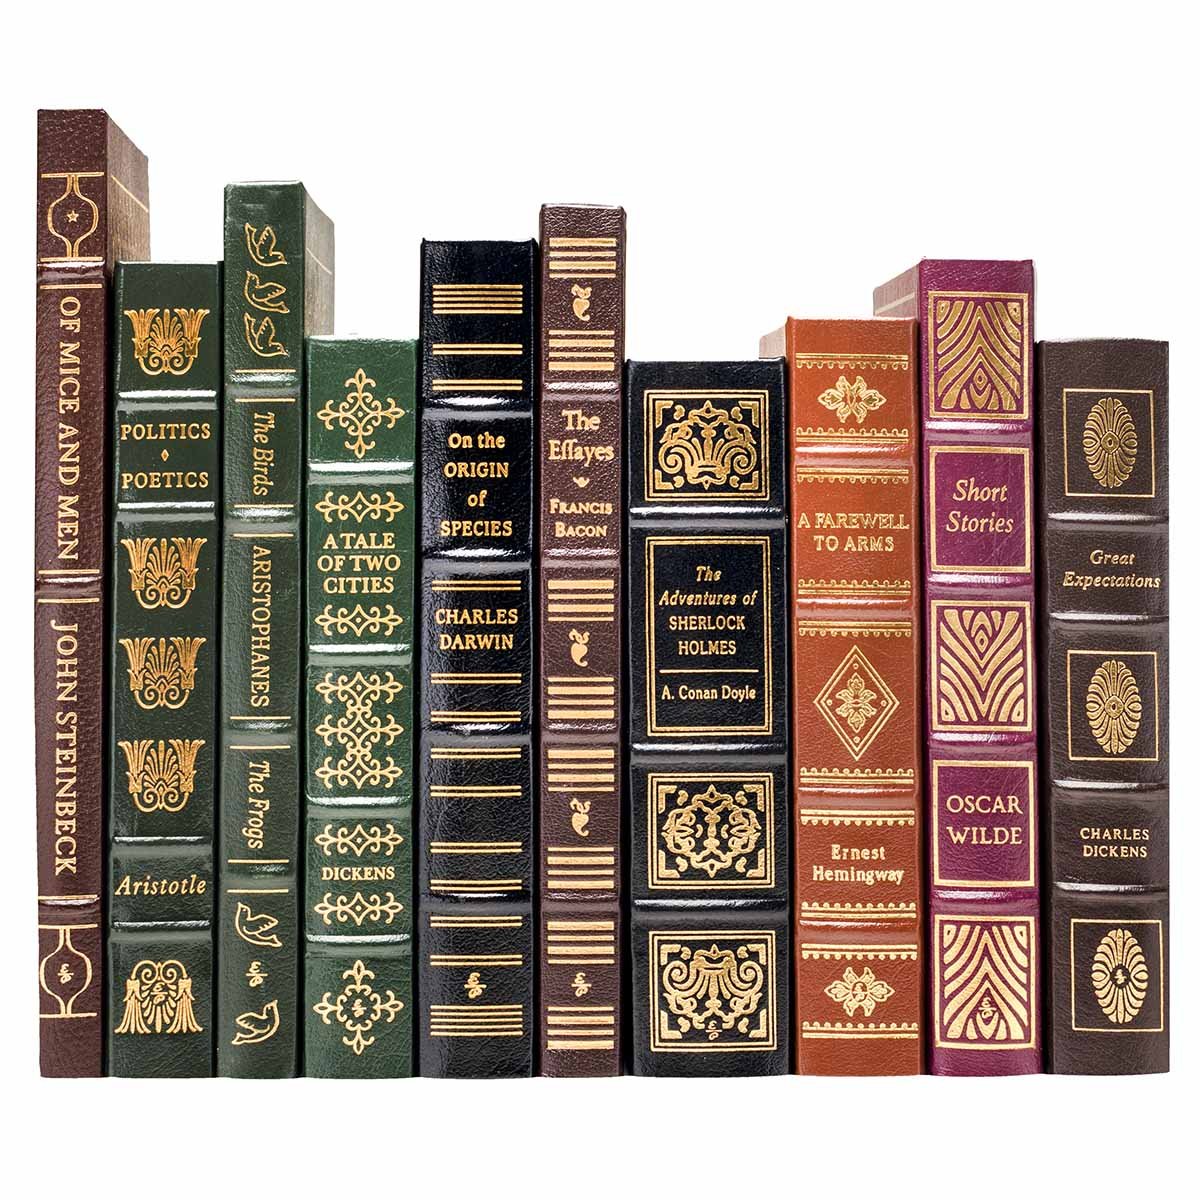 books leather modern press easton greatest classic complete classics collection bound binding spines series written ever library juniperbooks foot spine